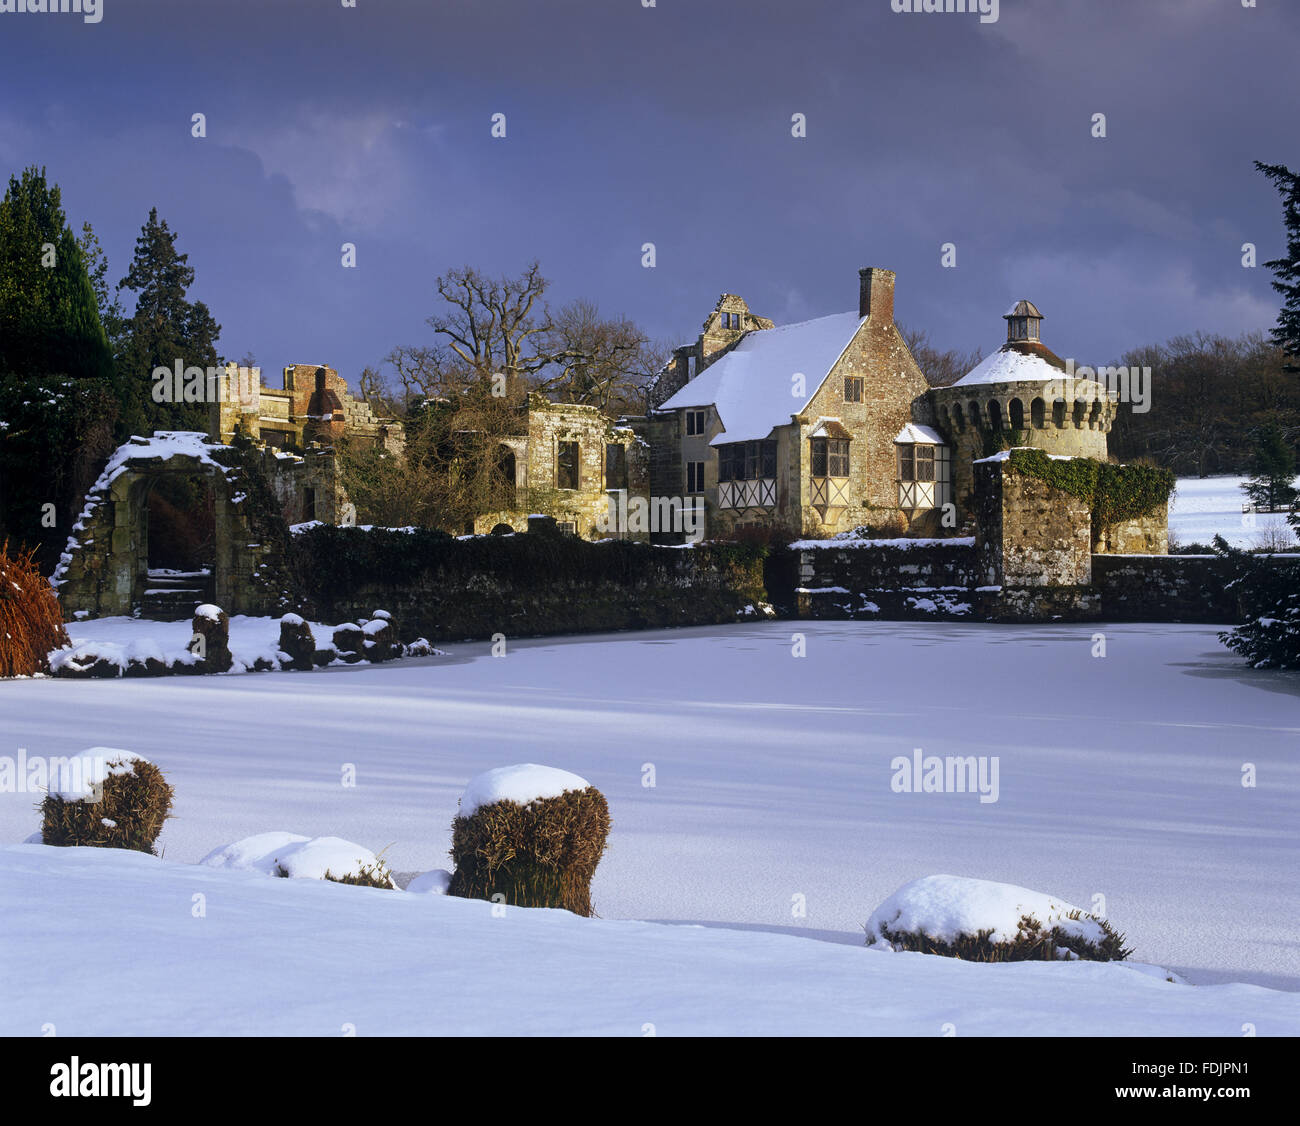 The picturesque fourteenth-century ruined castle in winter, under a heavy snow at Scotney Castle, Lamberhusrt, Kent. - Stock Image